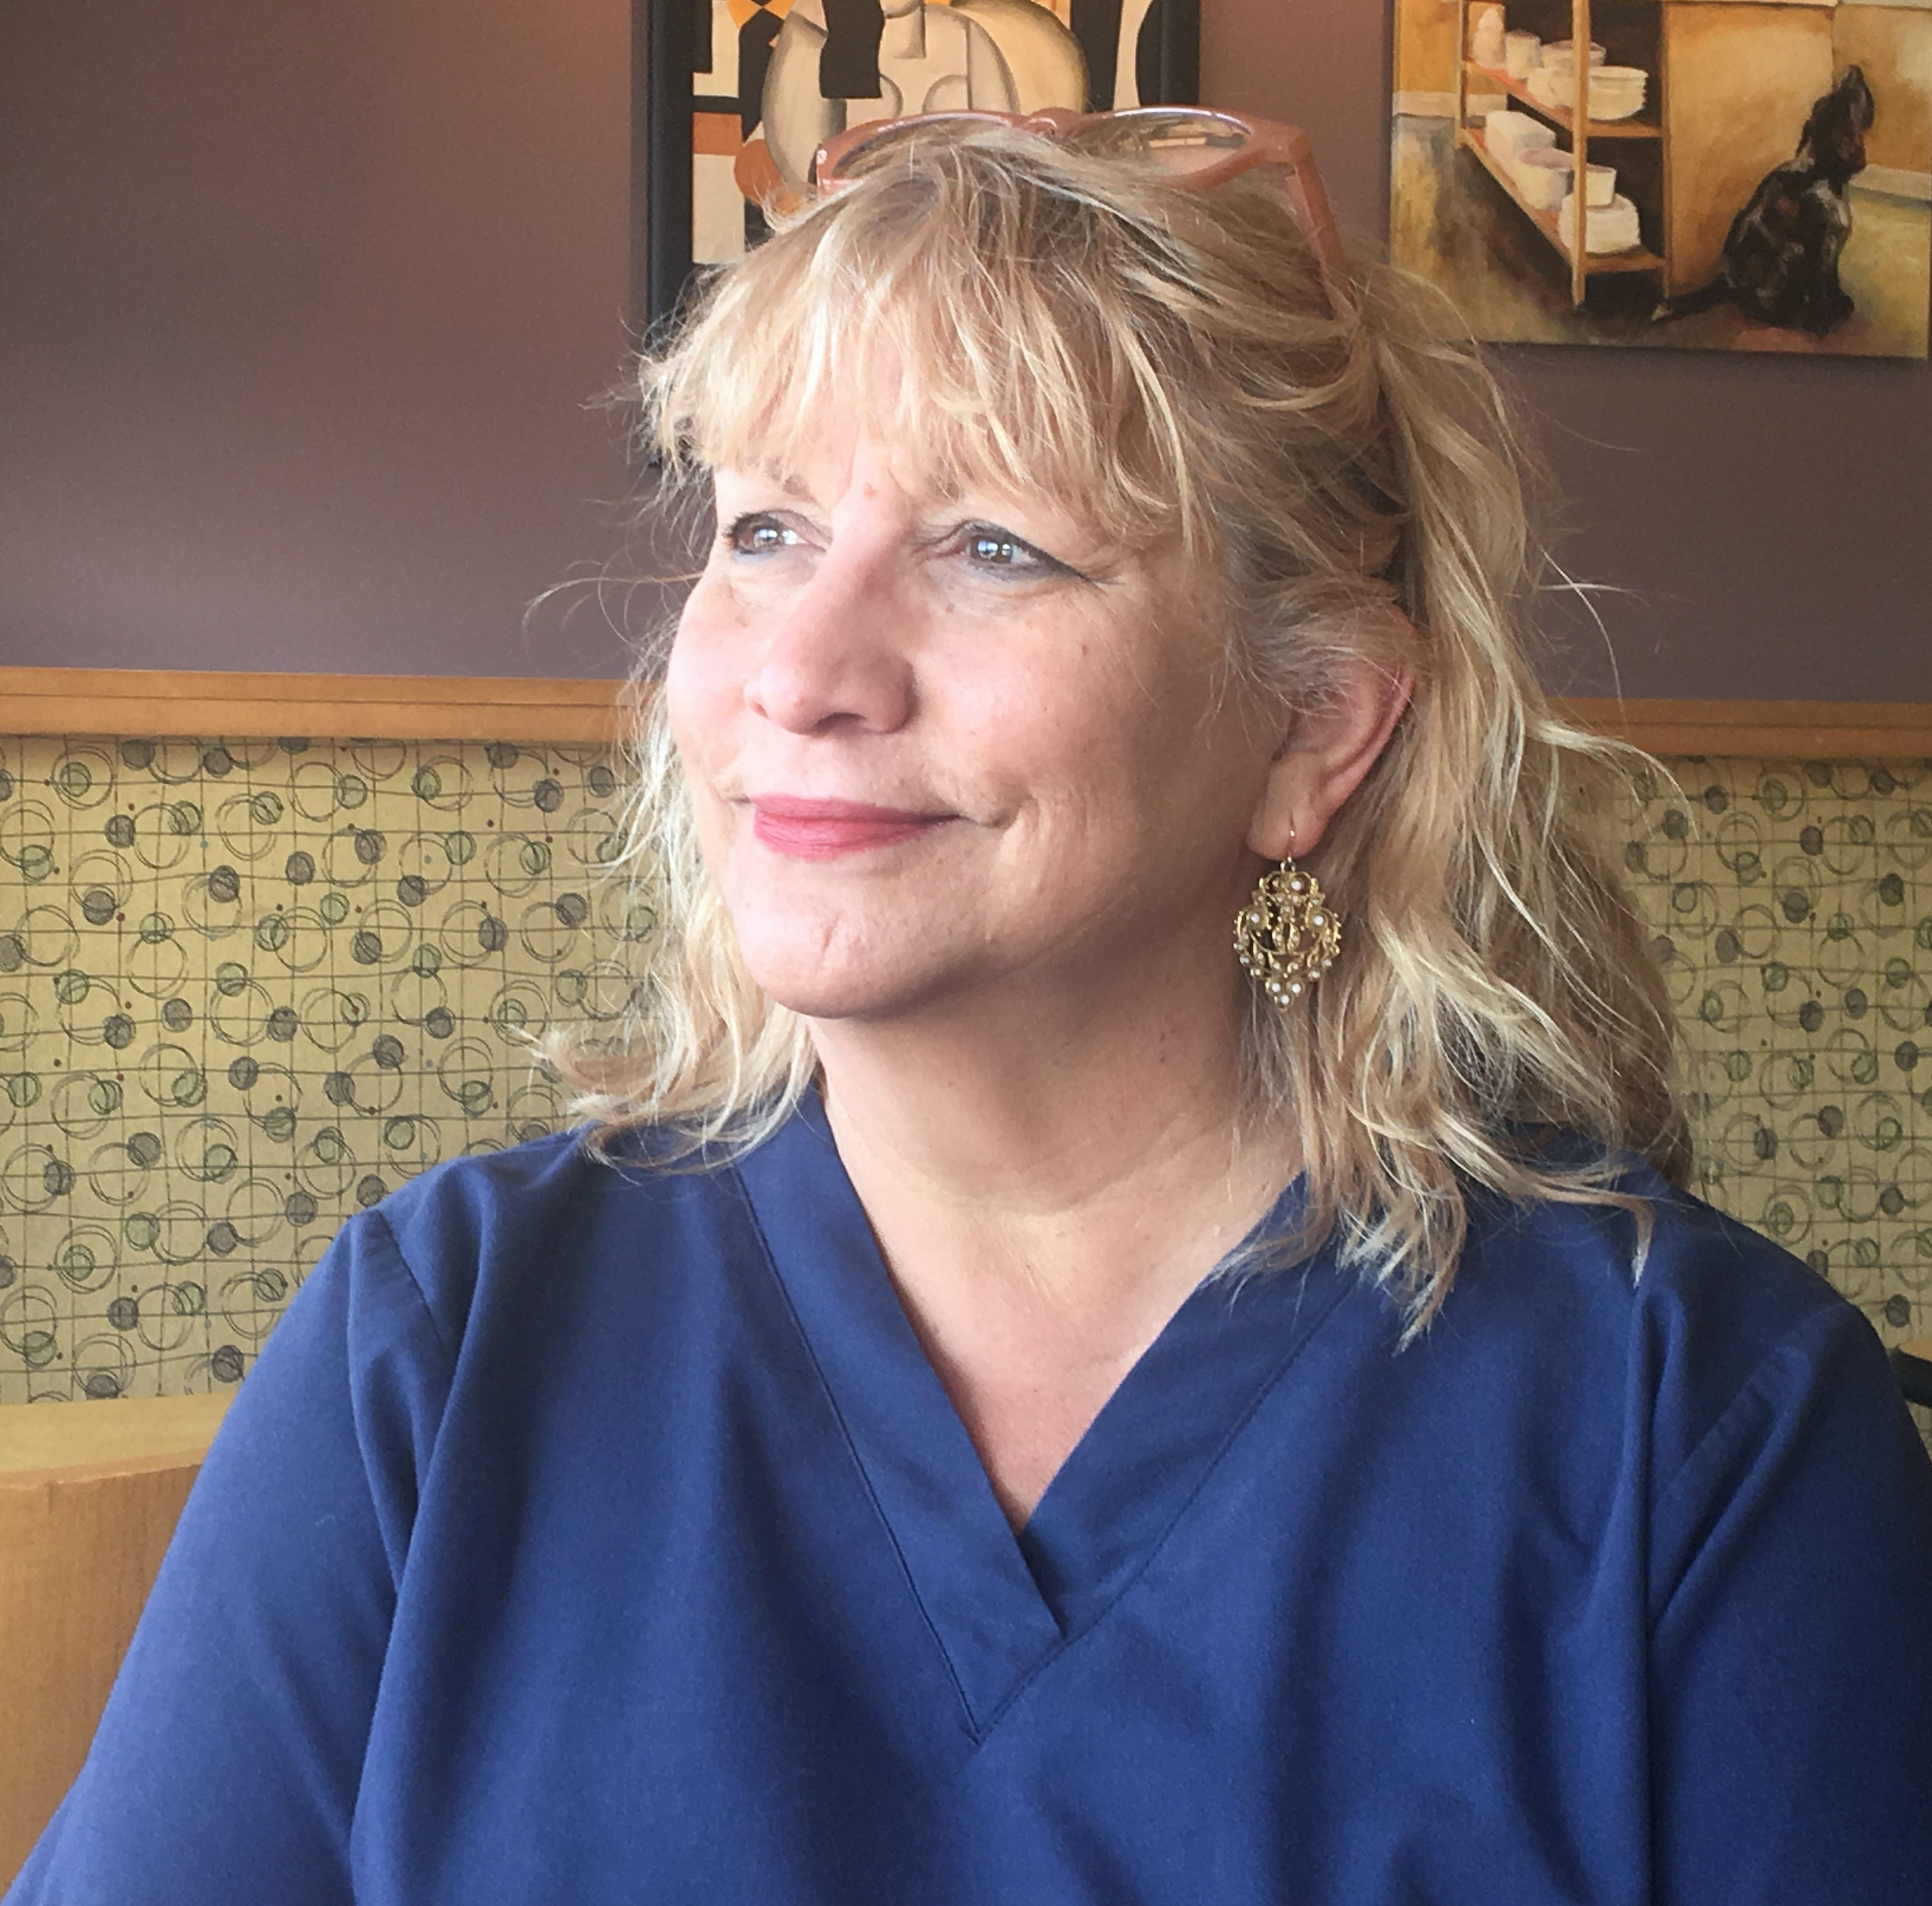 Kathleen VanPoppelen, a registered nurse from Oakland Township, was a diehard Republican until Donald Trump ran for President in 2016.